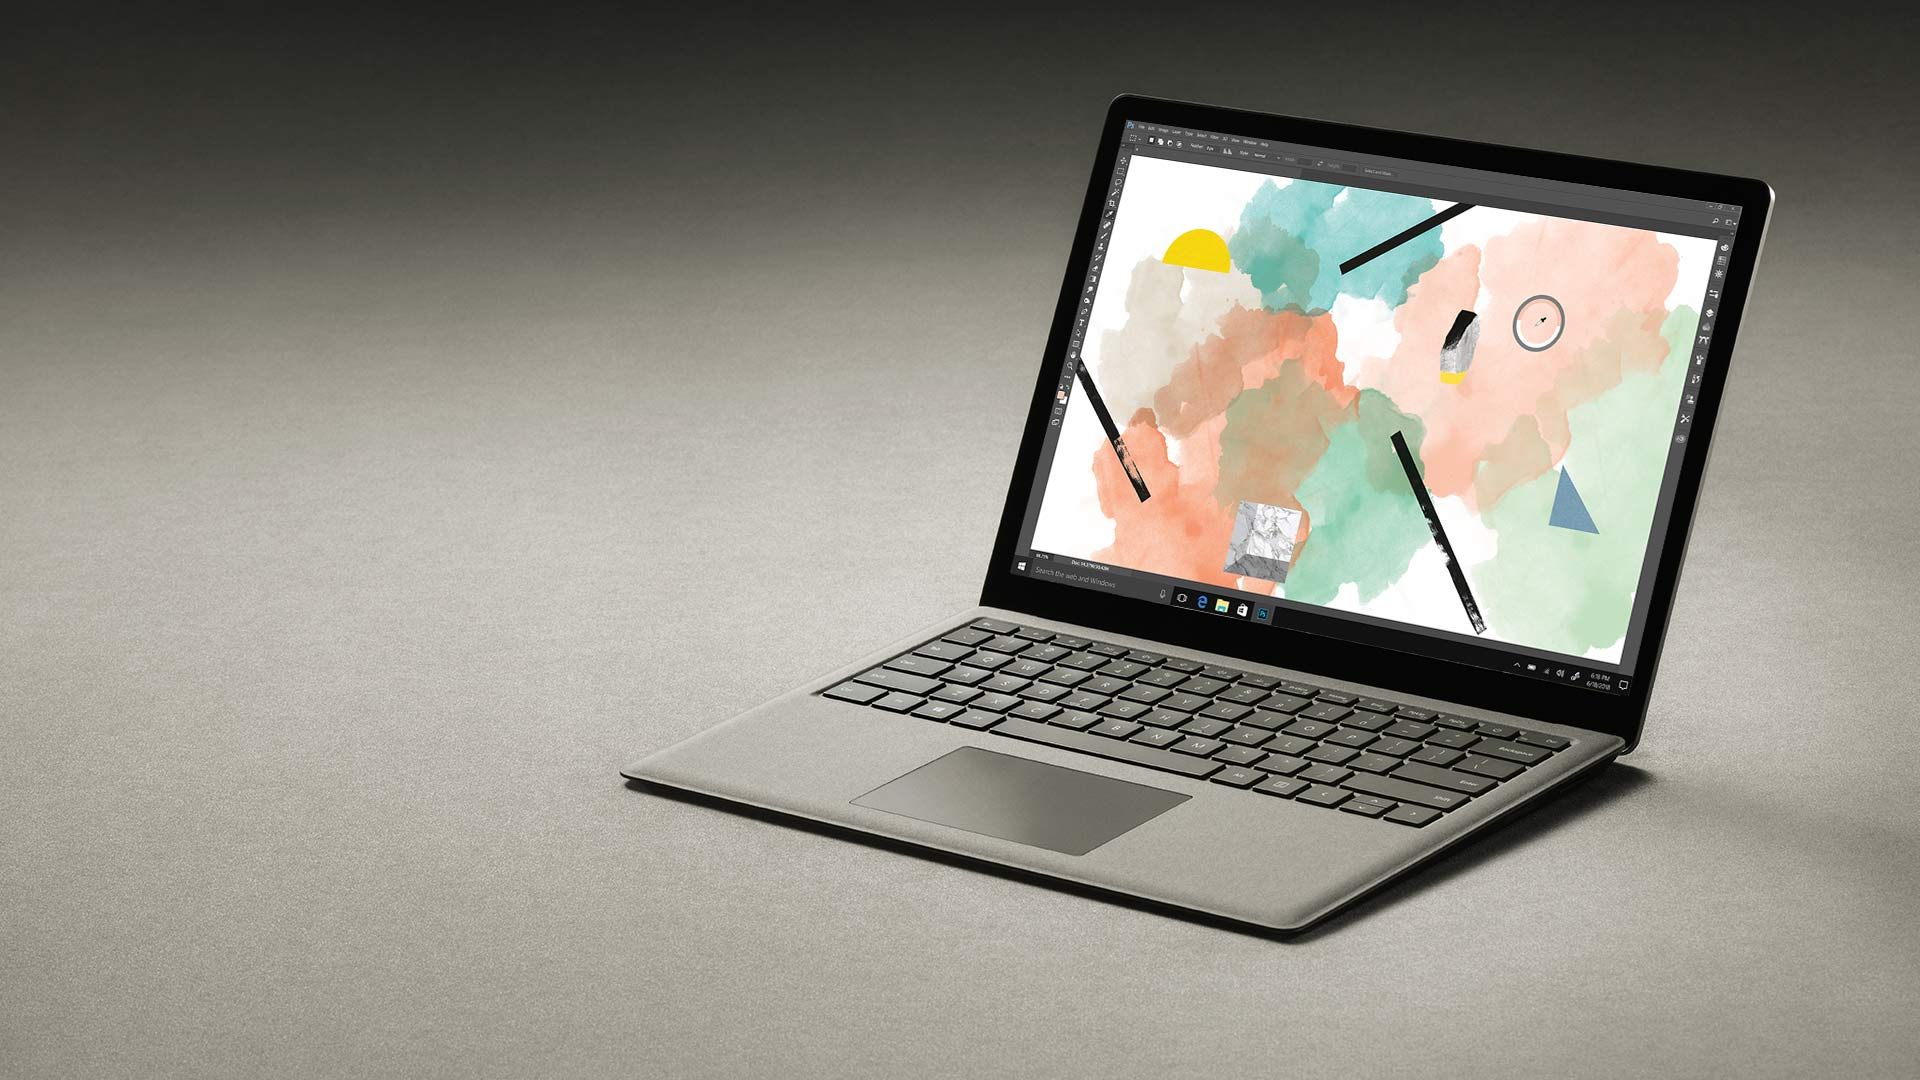 Guldfärgad Surface Laptop med Adobe Photoshop-skärm.